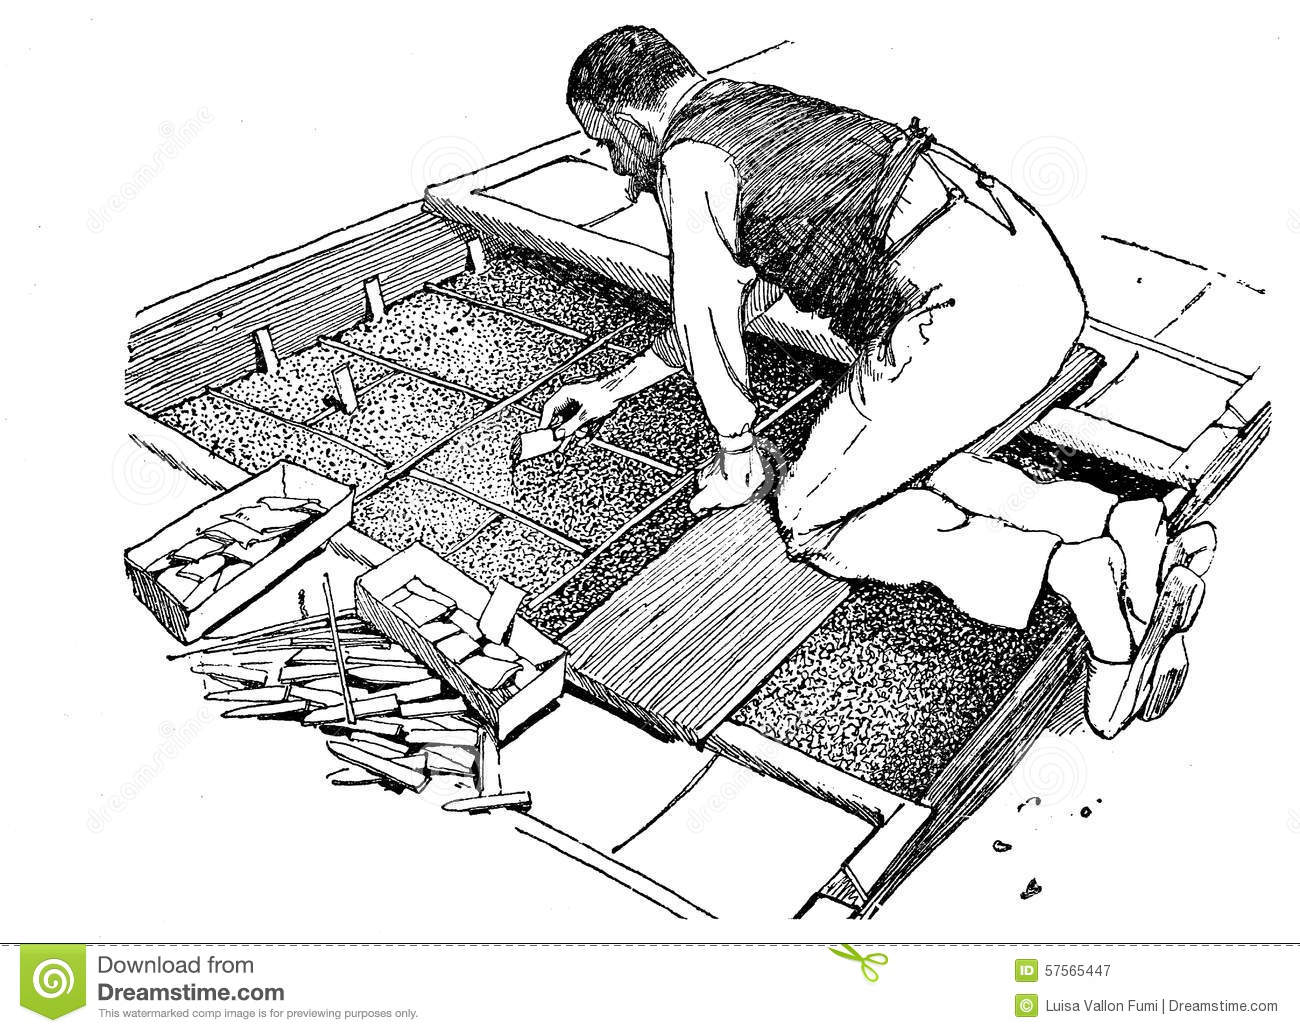 Engraving Of Farmer Planting Seeds In A Small Greenhouse